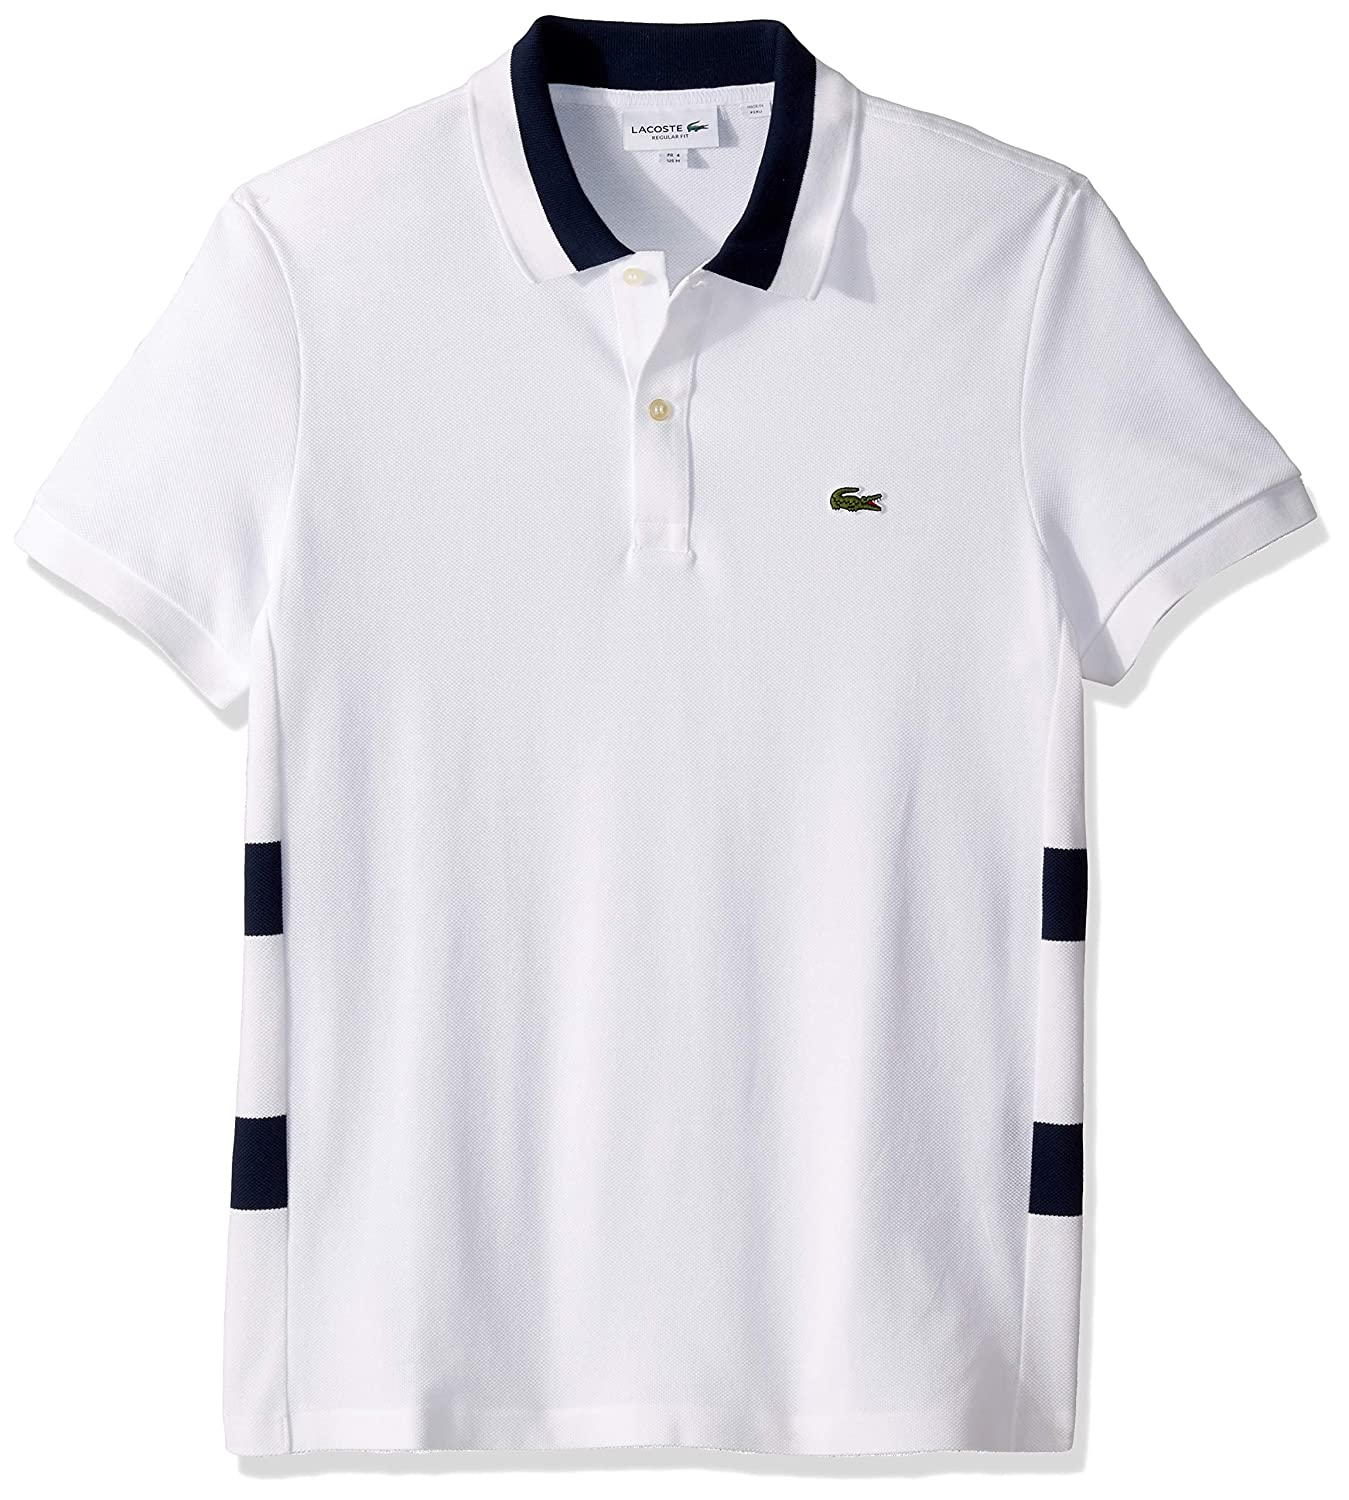 Lacoste Mens S//S 3 Ply Textured Pique Regualr Fit Polo